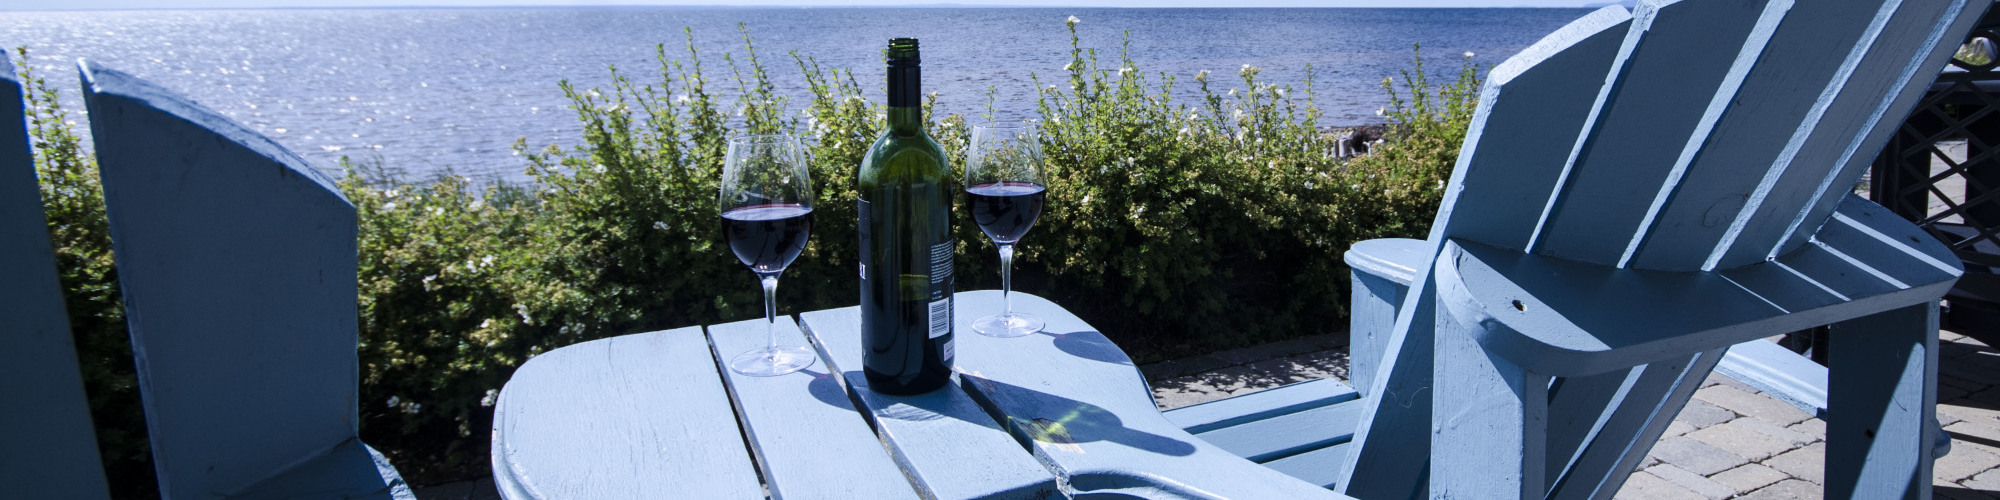 Aperitif by the sea, 2 chairs on a terrace, wine